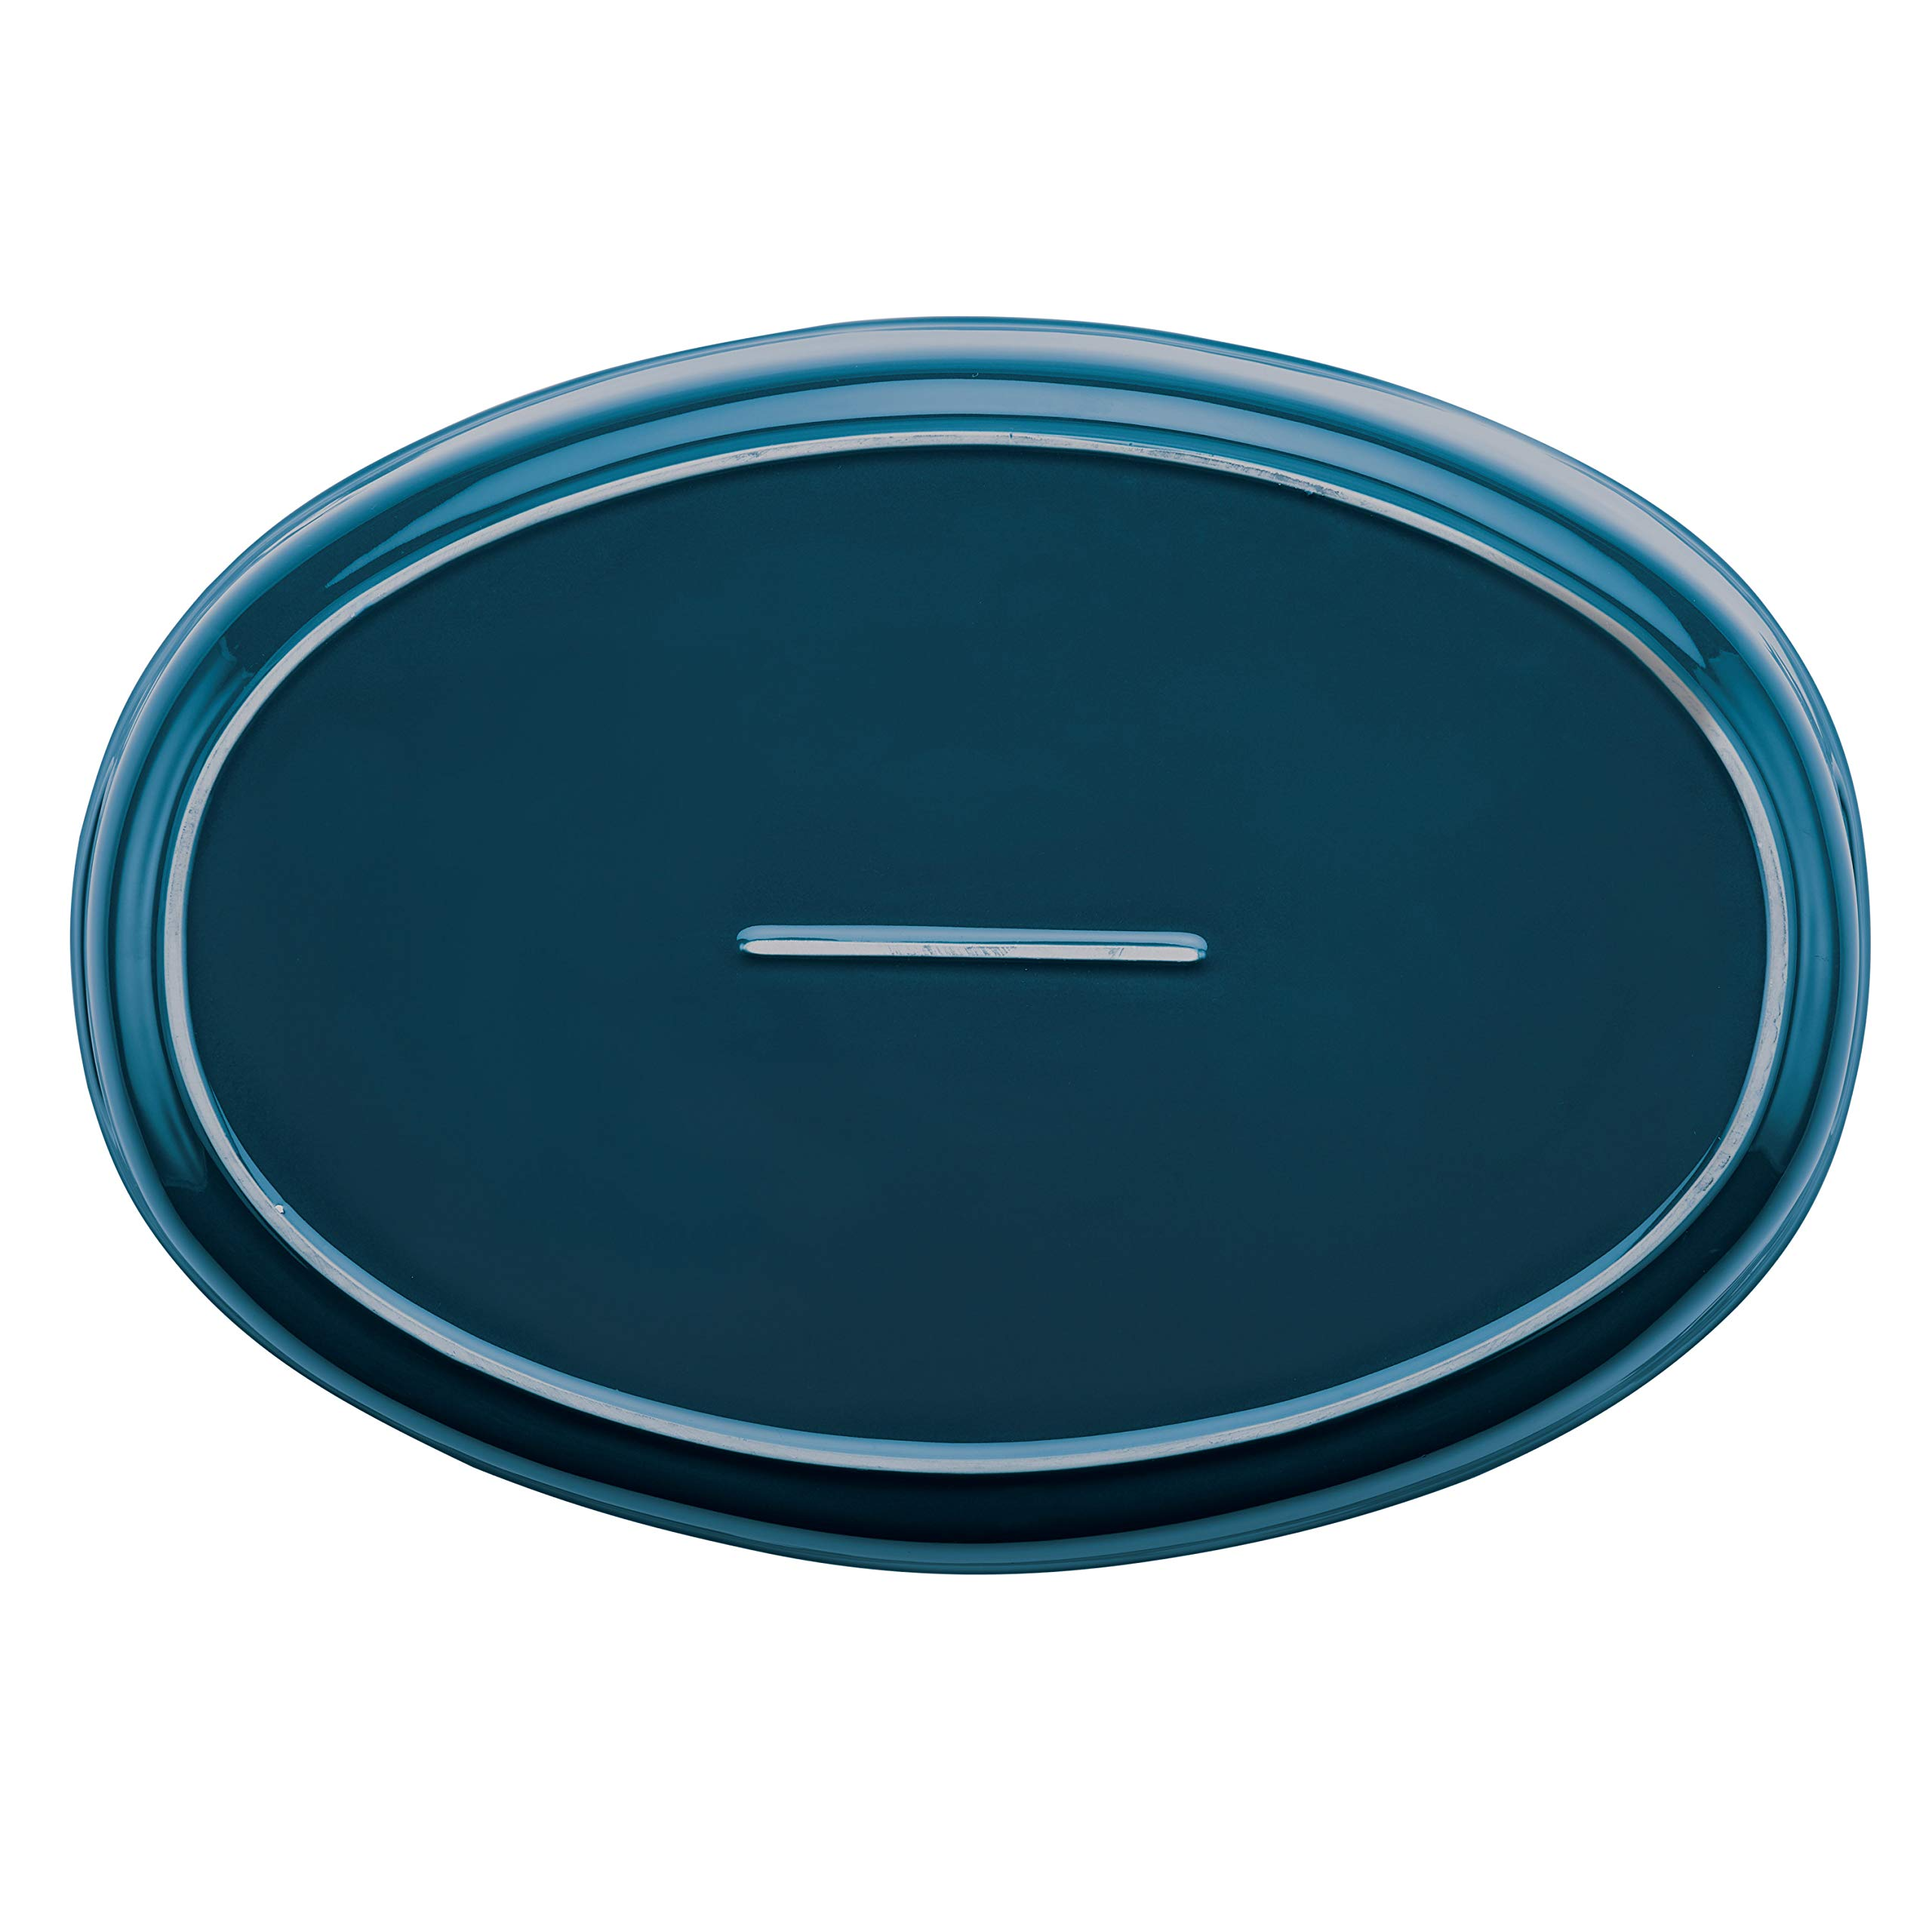 Rachael Ray Ceramics Bubble and Brown Oval Baker Set, 2-Piece, Marine Blue by Rachael Ray (Image #3)